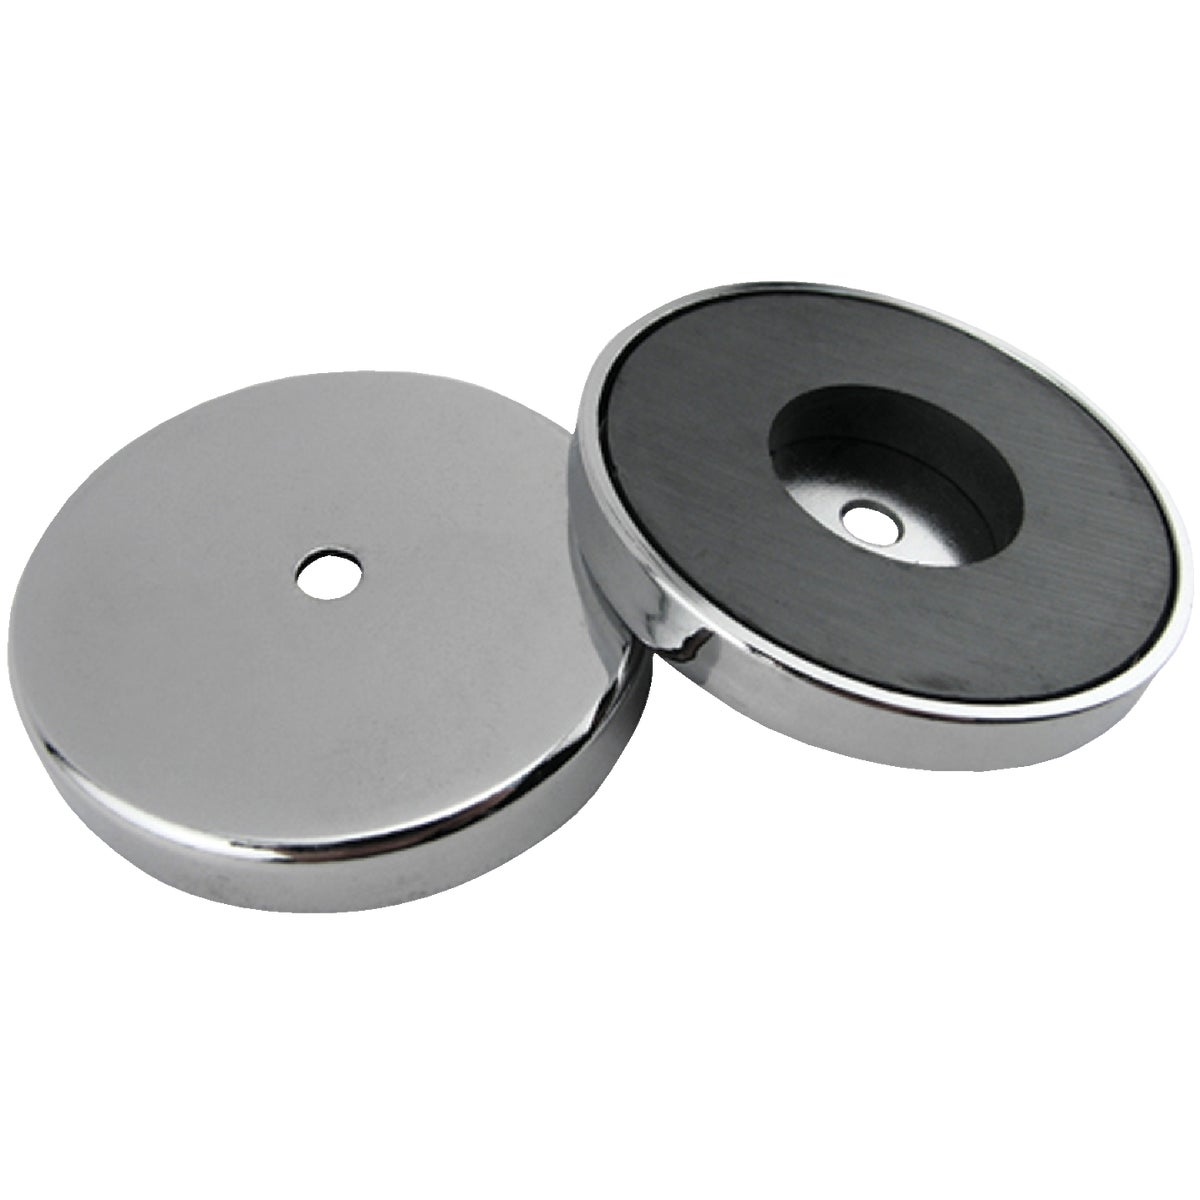 "2-5/8"" MAGNETIC BASE"